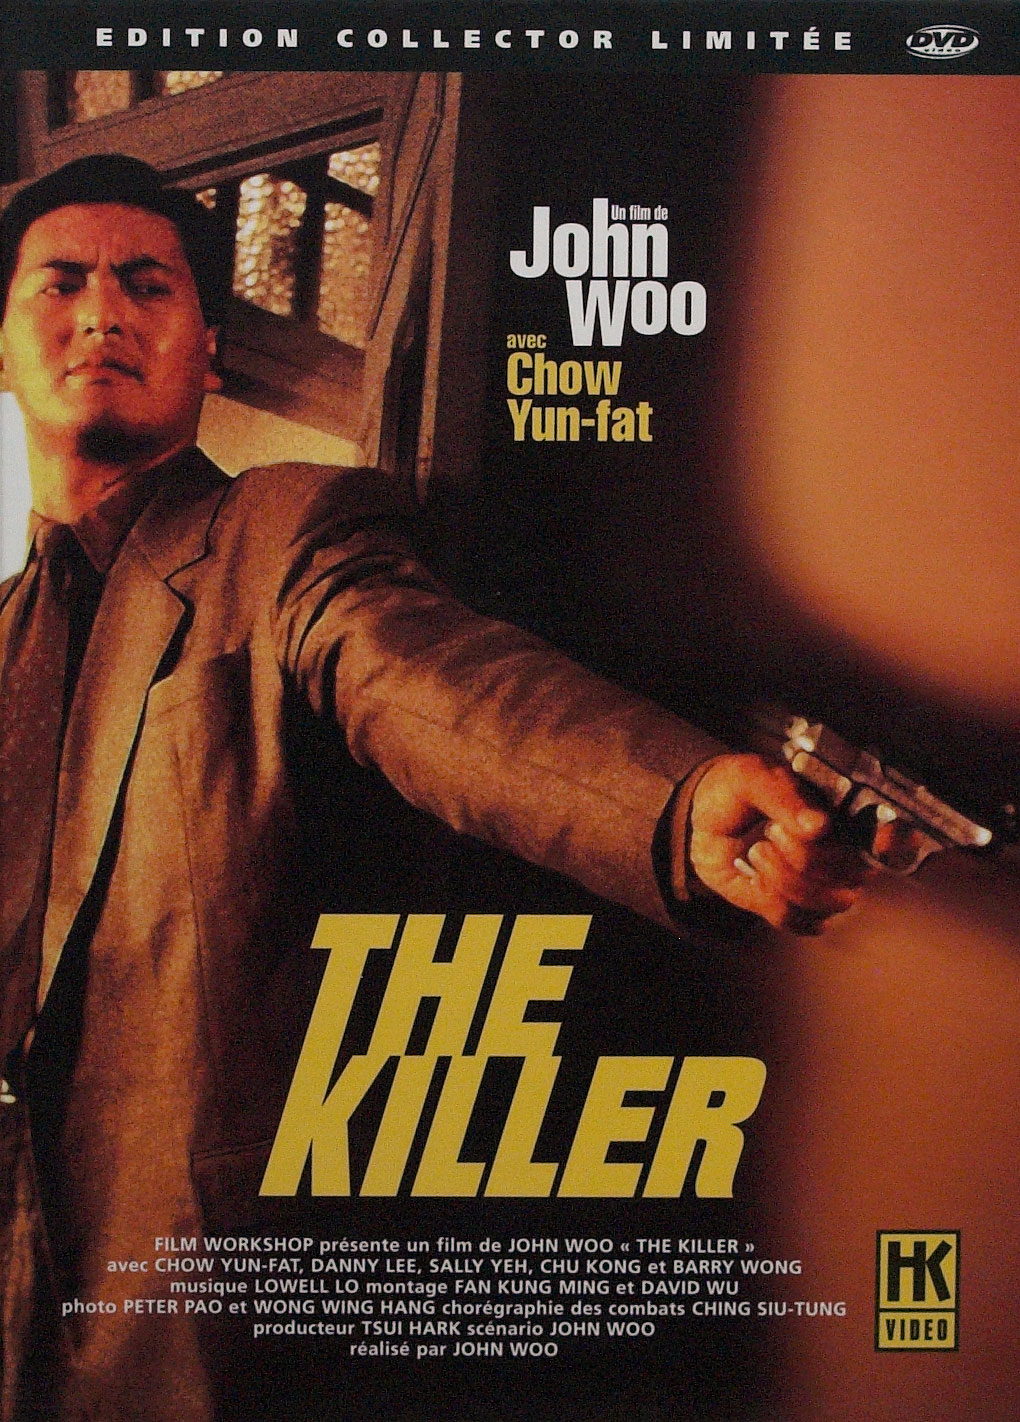 [Image: The_Killer_John_Woo.jpg]